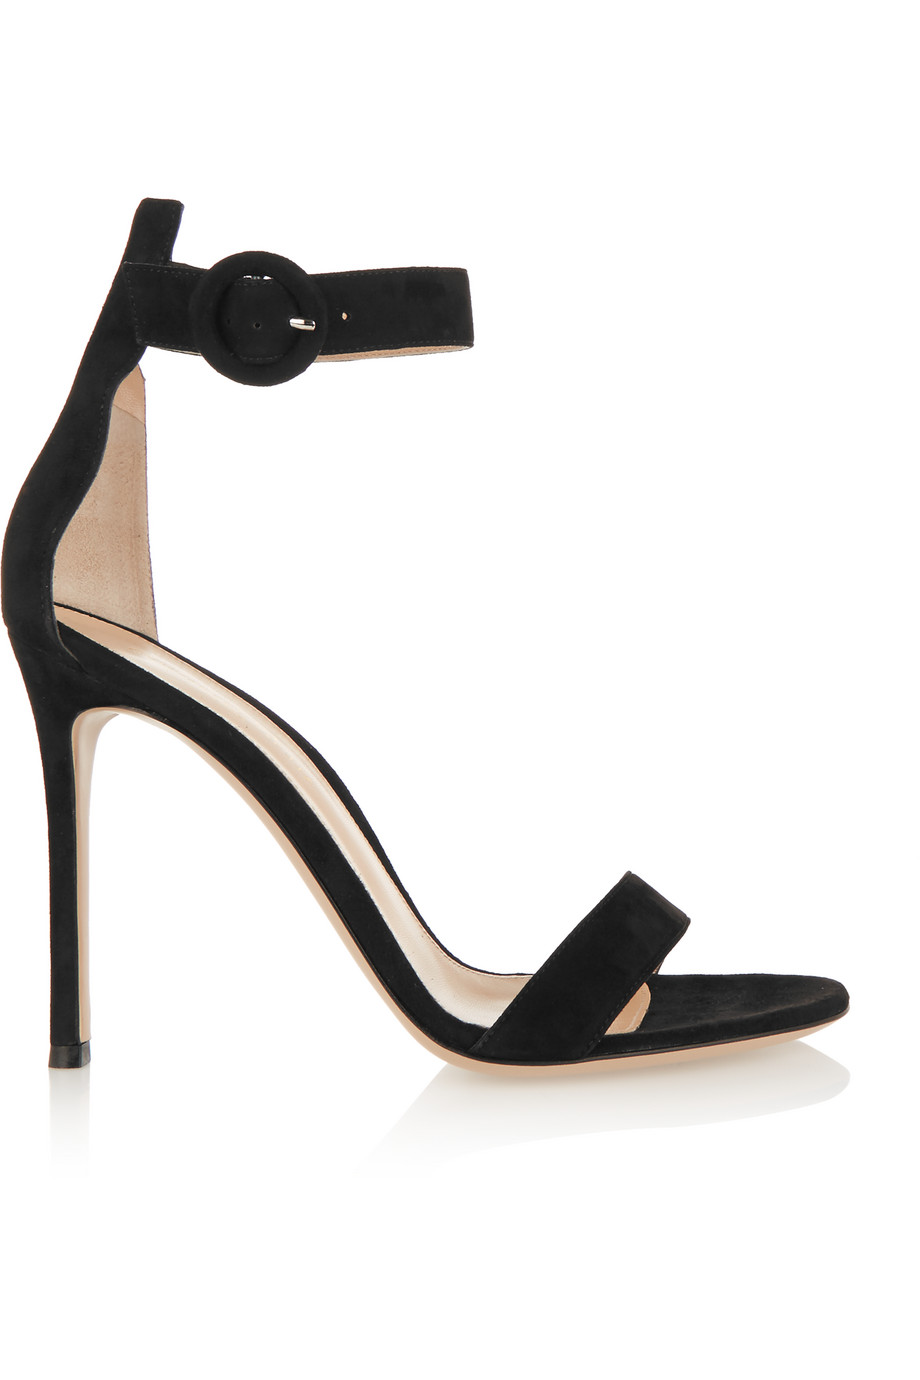 Gianvito Rossi Suede Sandals, Black, Women's US Size: 6.5, Size: 37